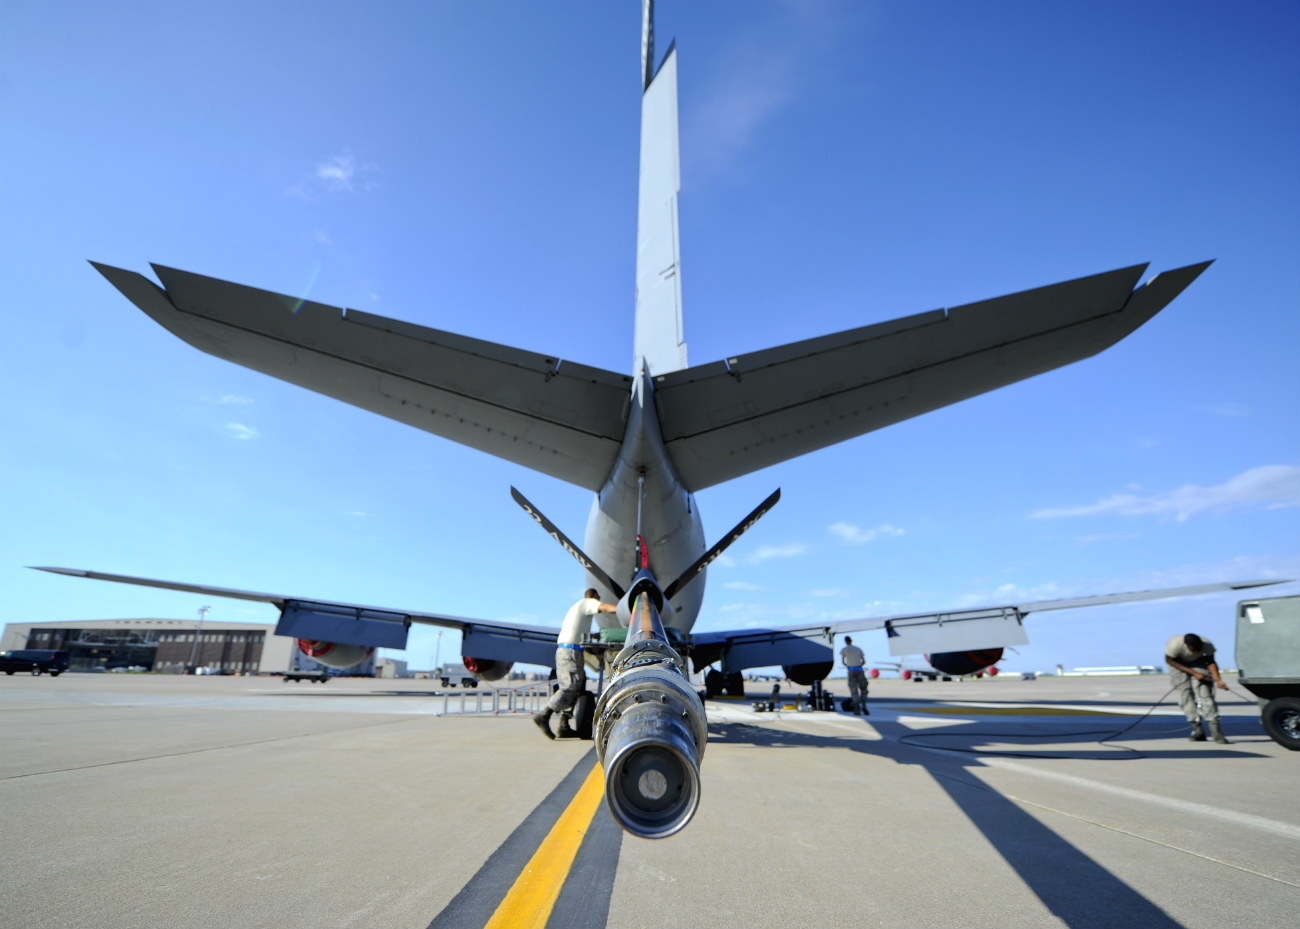 KC-135 images Boom and tail